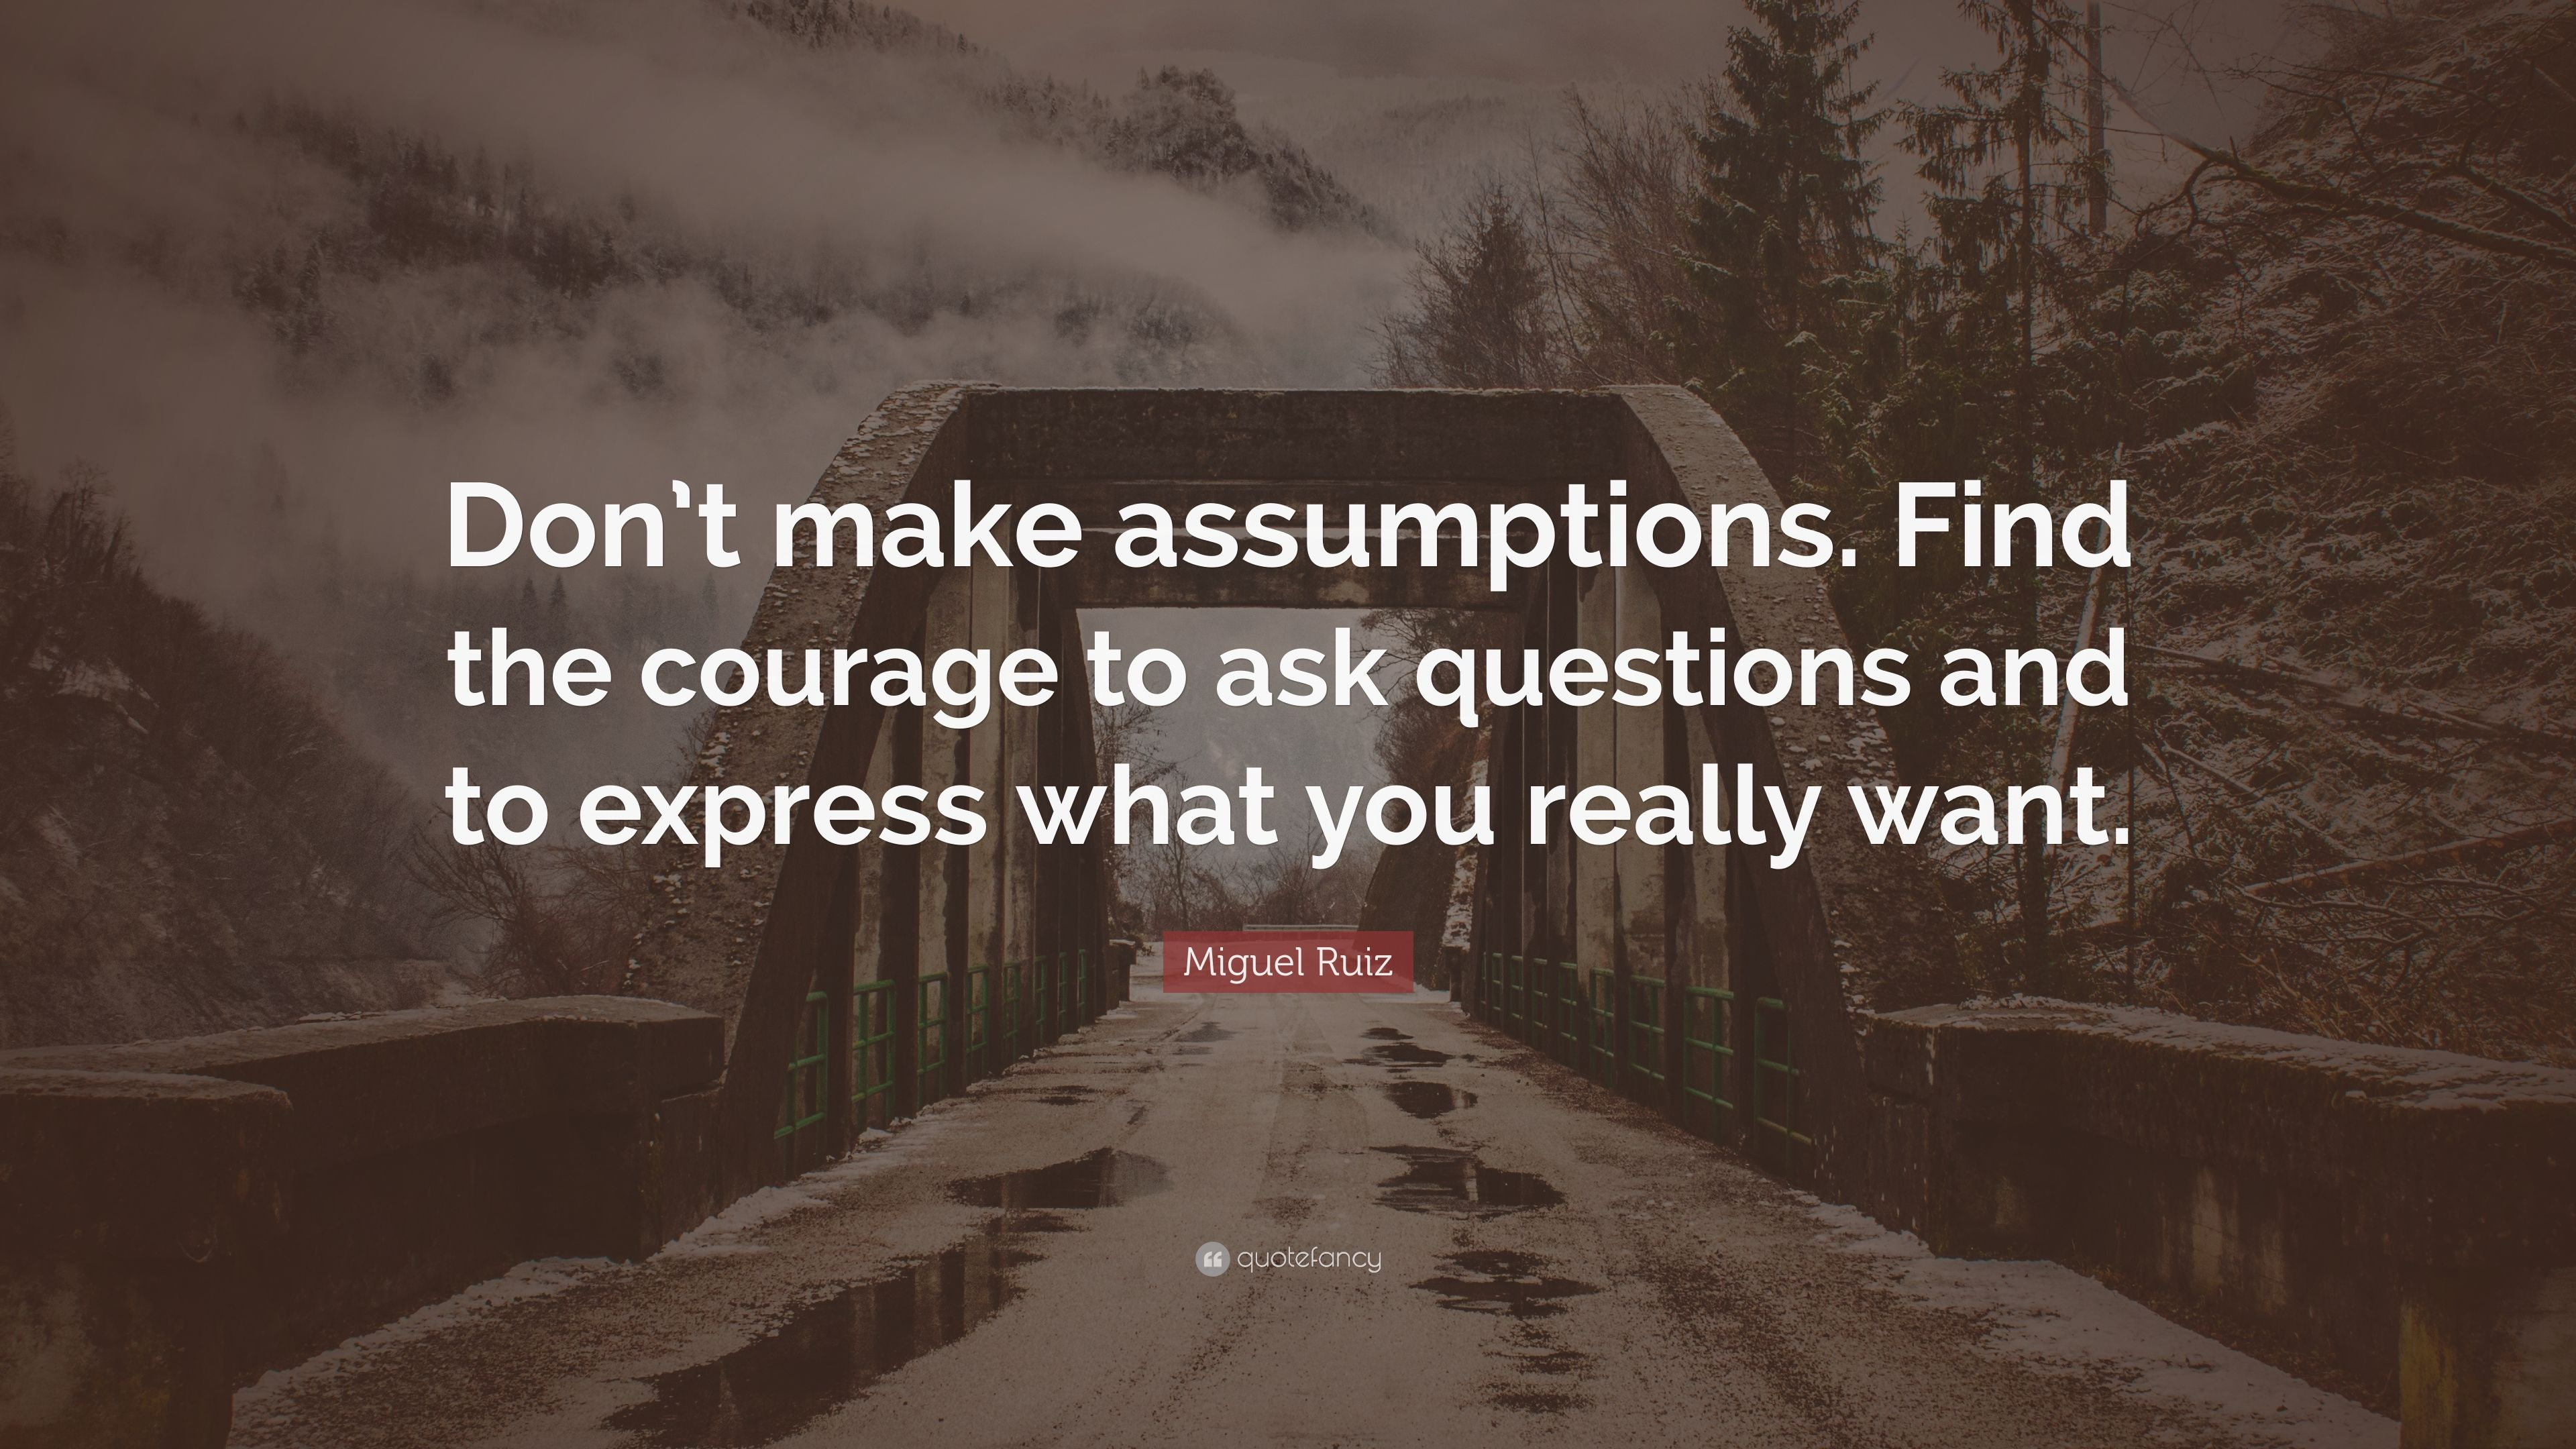 5731600-Miguel-Ruiz-Quote-Don-t-make-assumptions-Find-the-courage-to-ask.jpg